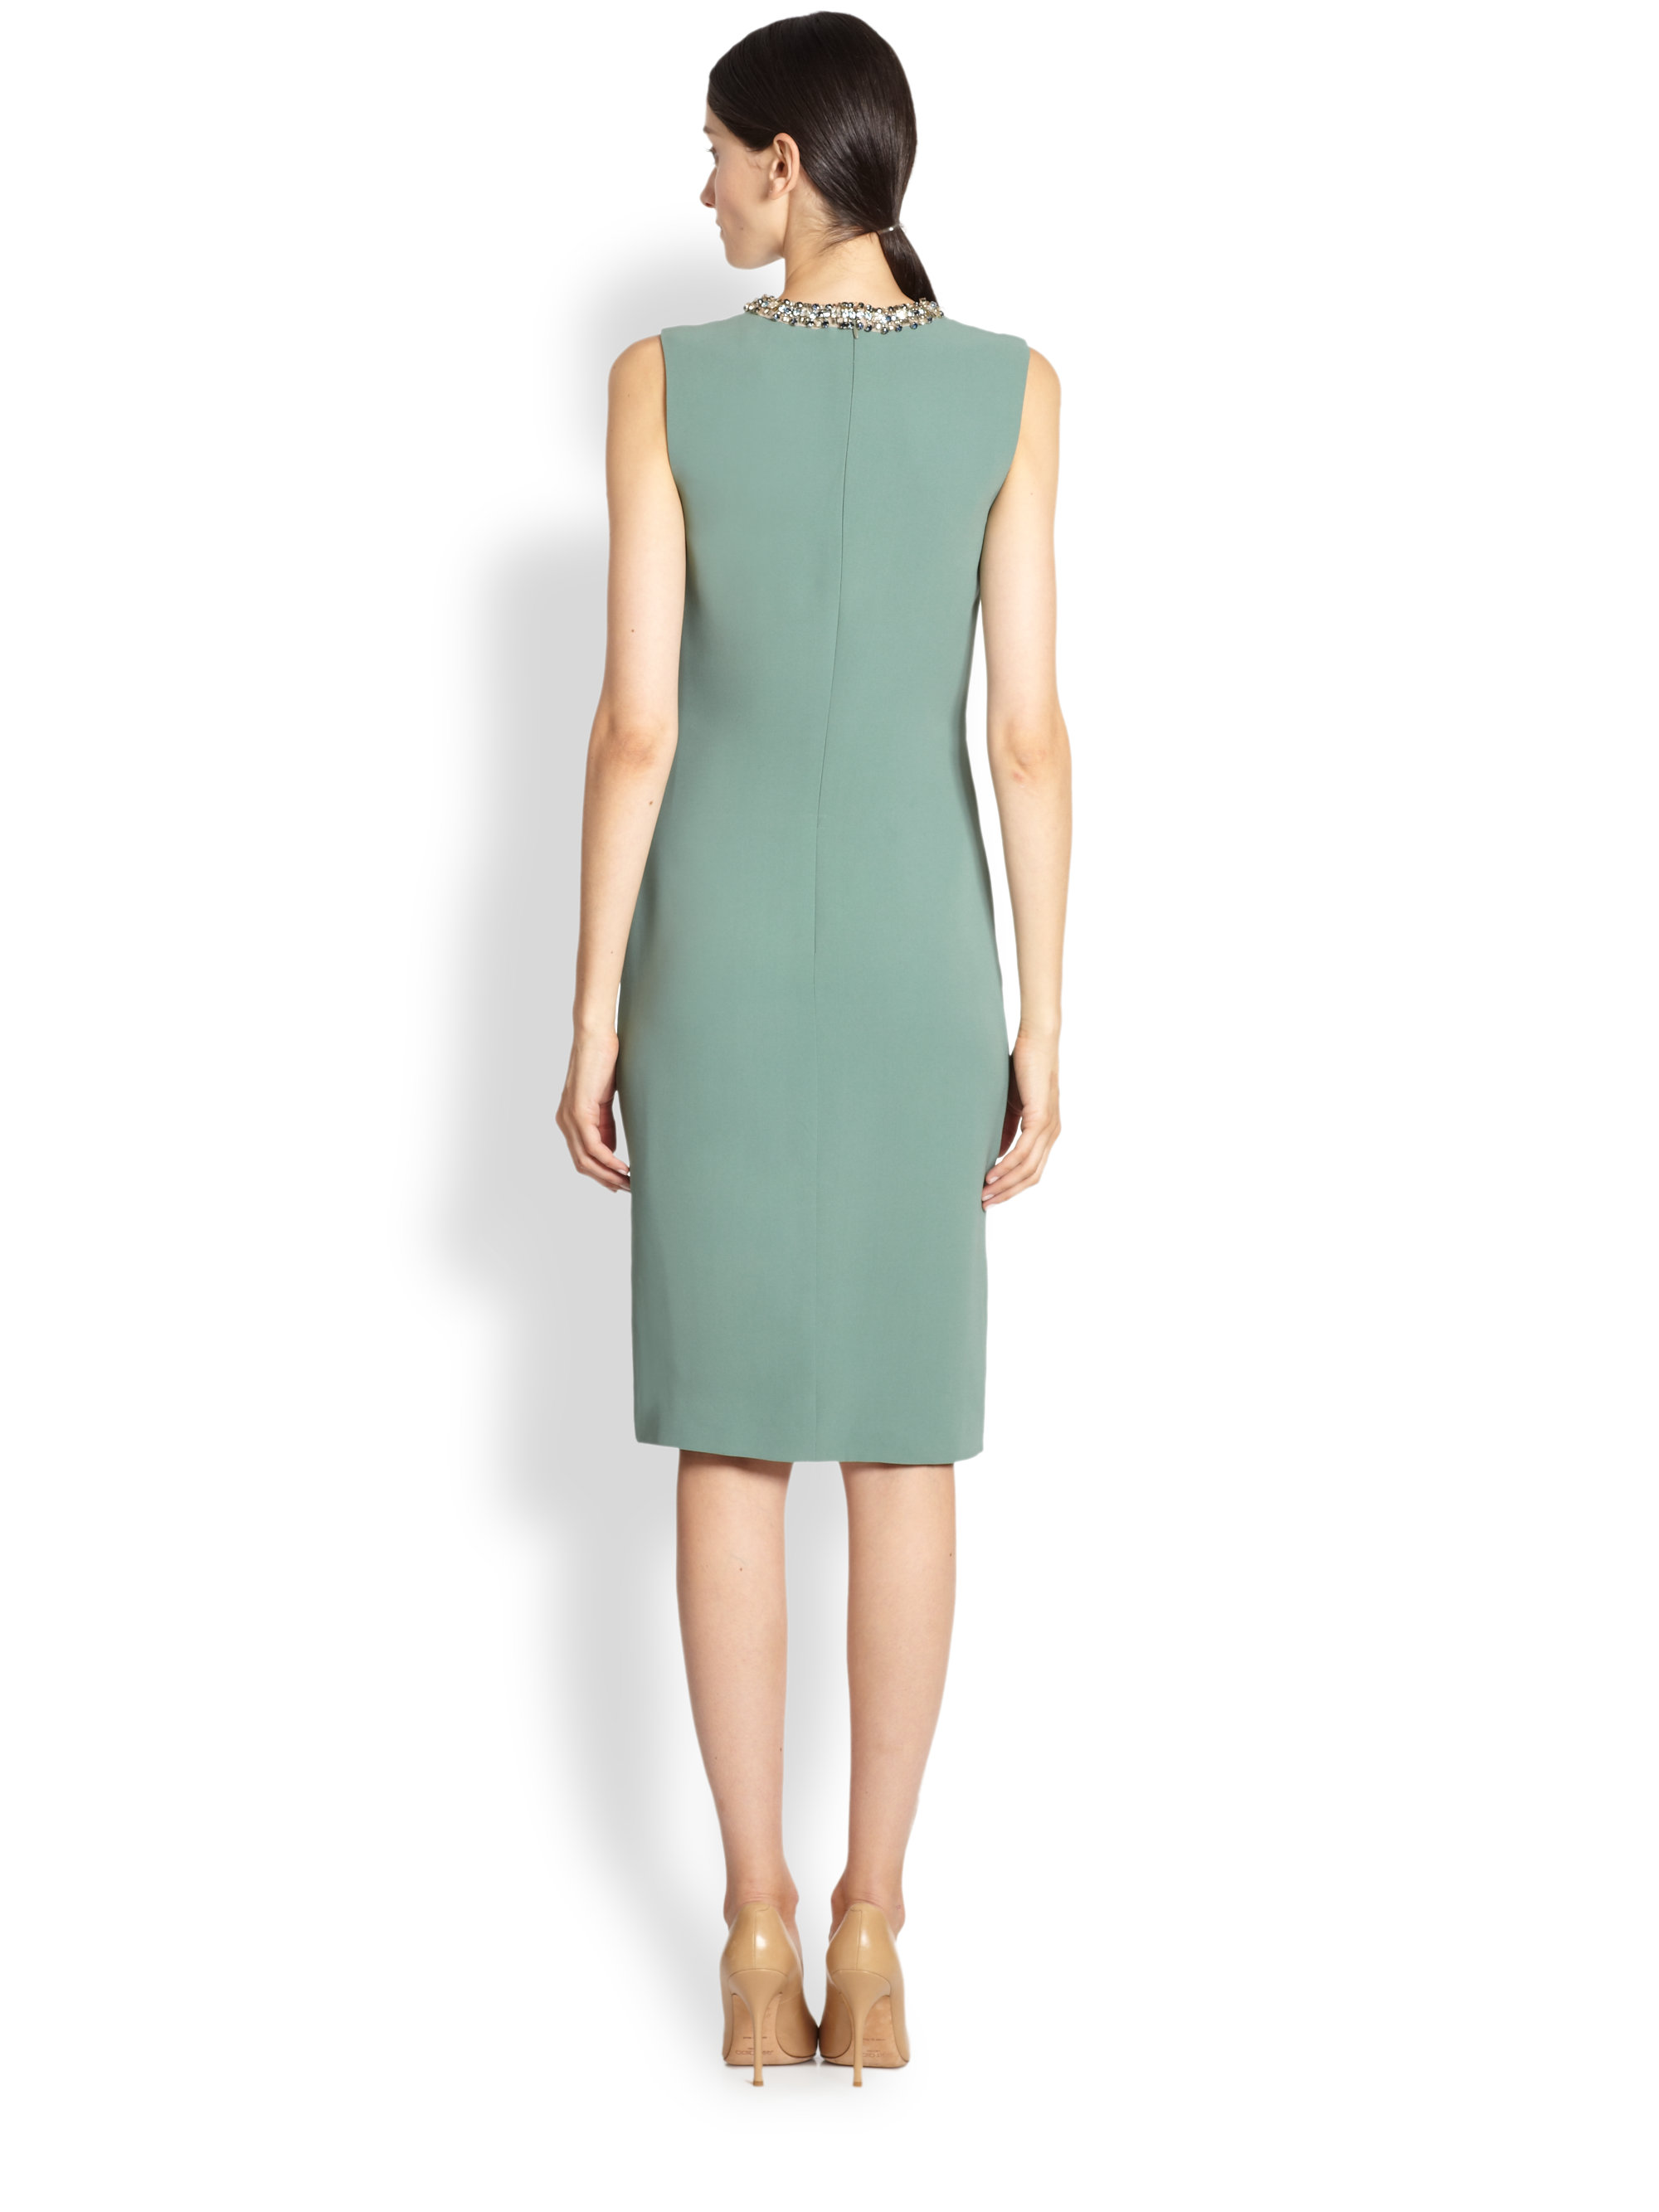 Lyst - Ralph Lauren Collection Beaded Atkins Dress in Green